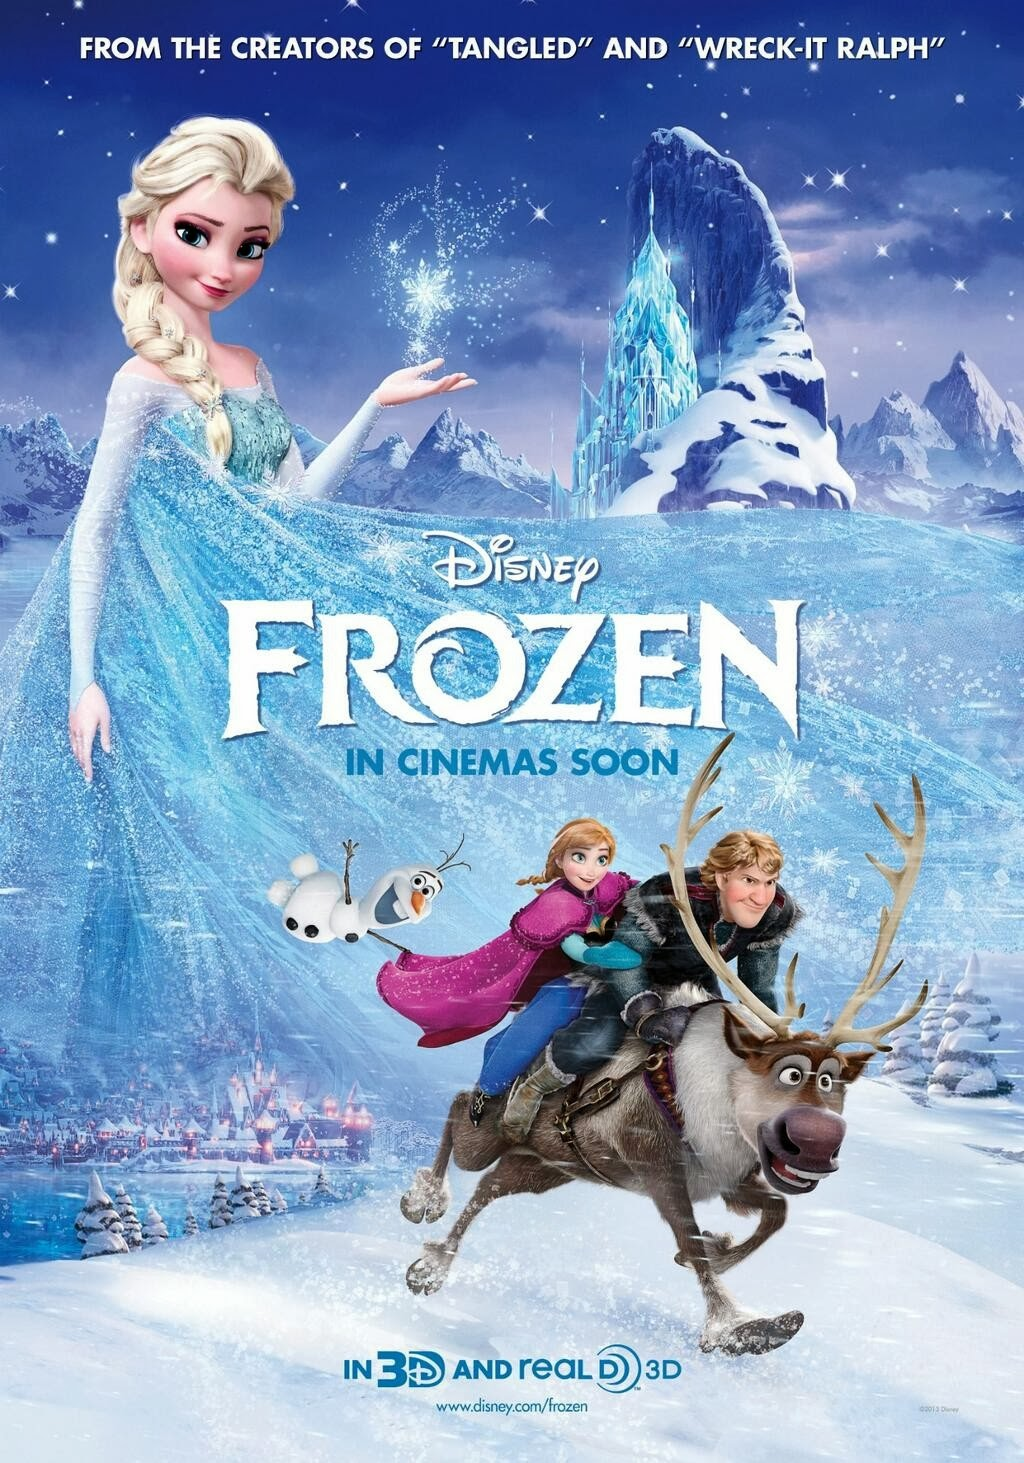 Disney's Frozen highest grossing movie of all time?